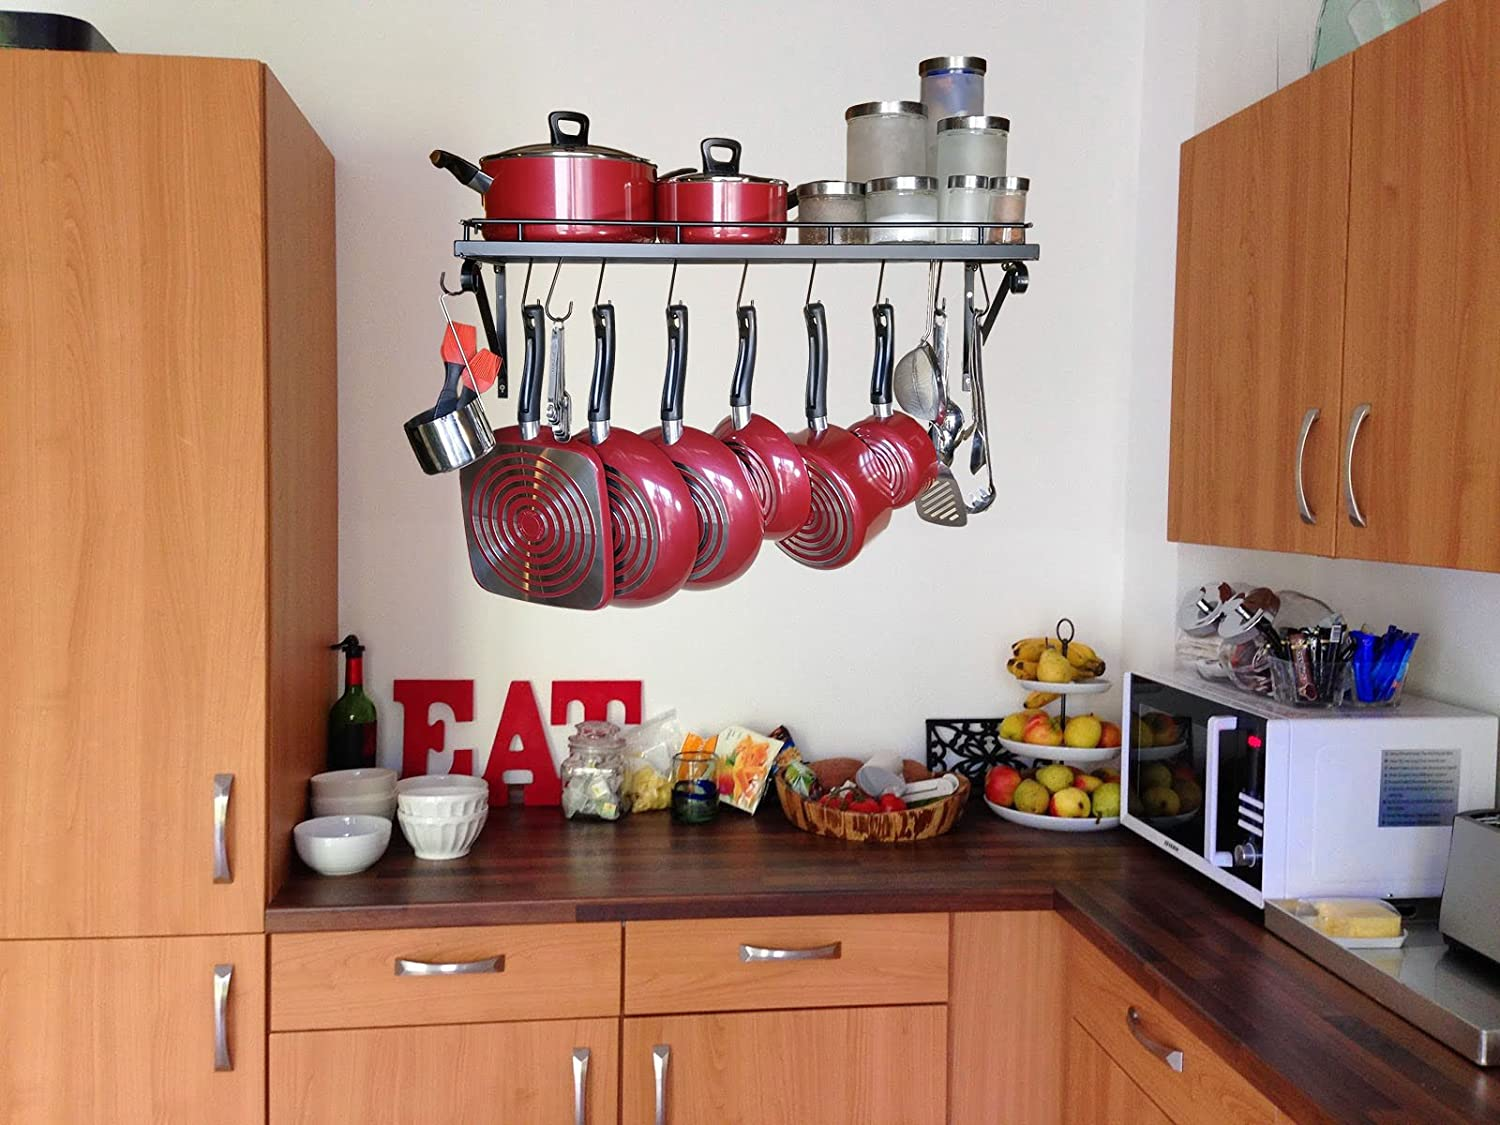 Amazoncom 30 Wall mounted pots and pans